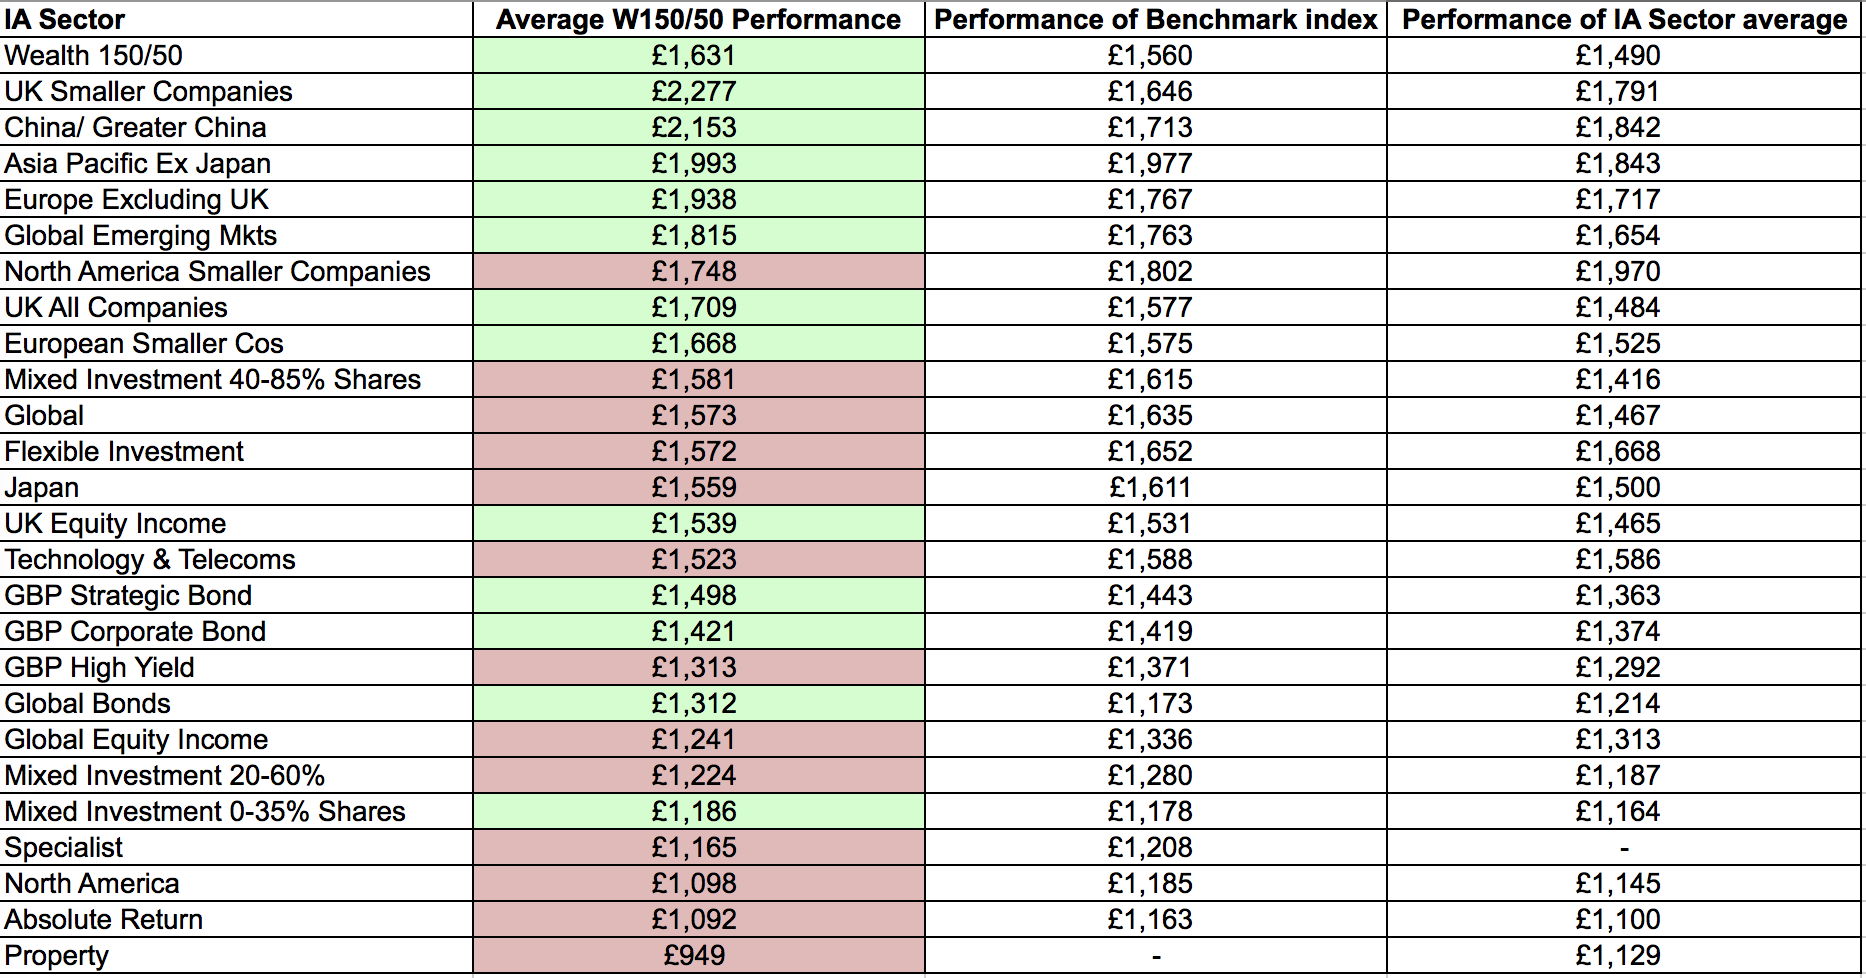 Hargreaves Lansdown Wealth 150/50 performance review